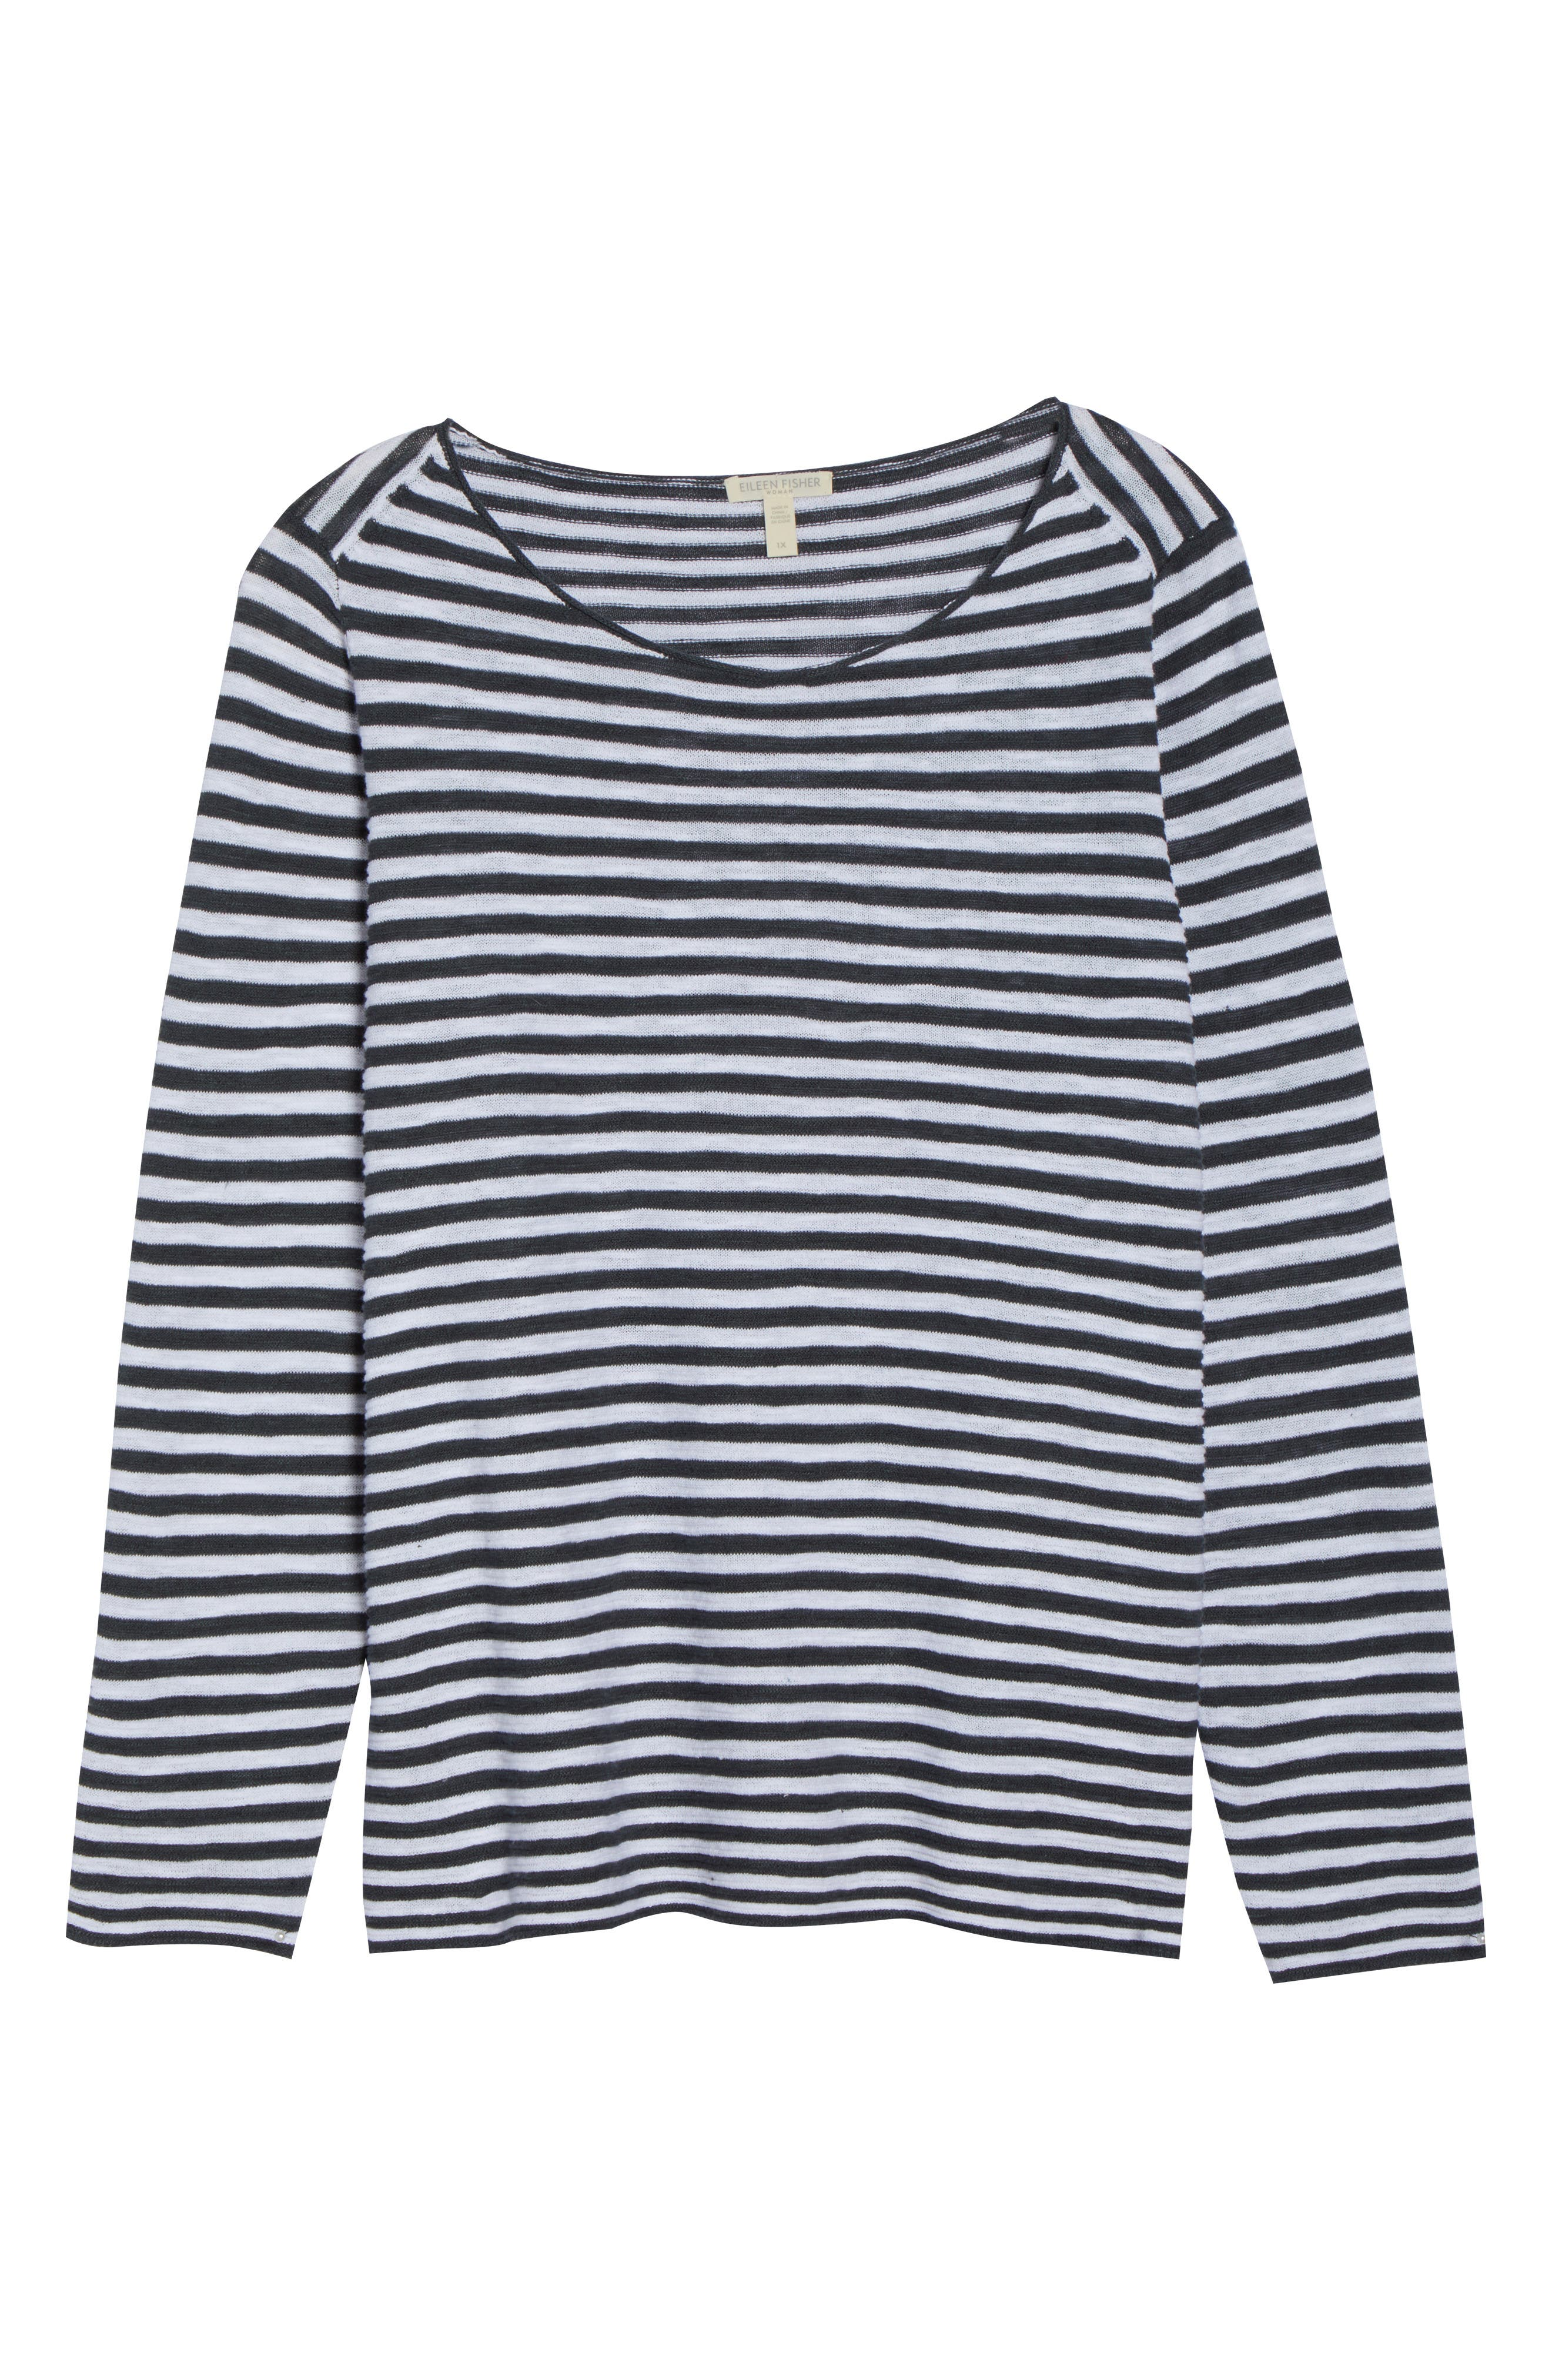 Stripe Organic Linen & Cotton Sweater,                             Alternate thumbnail 7, color,